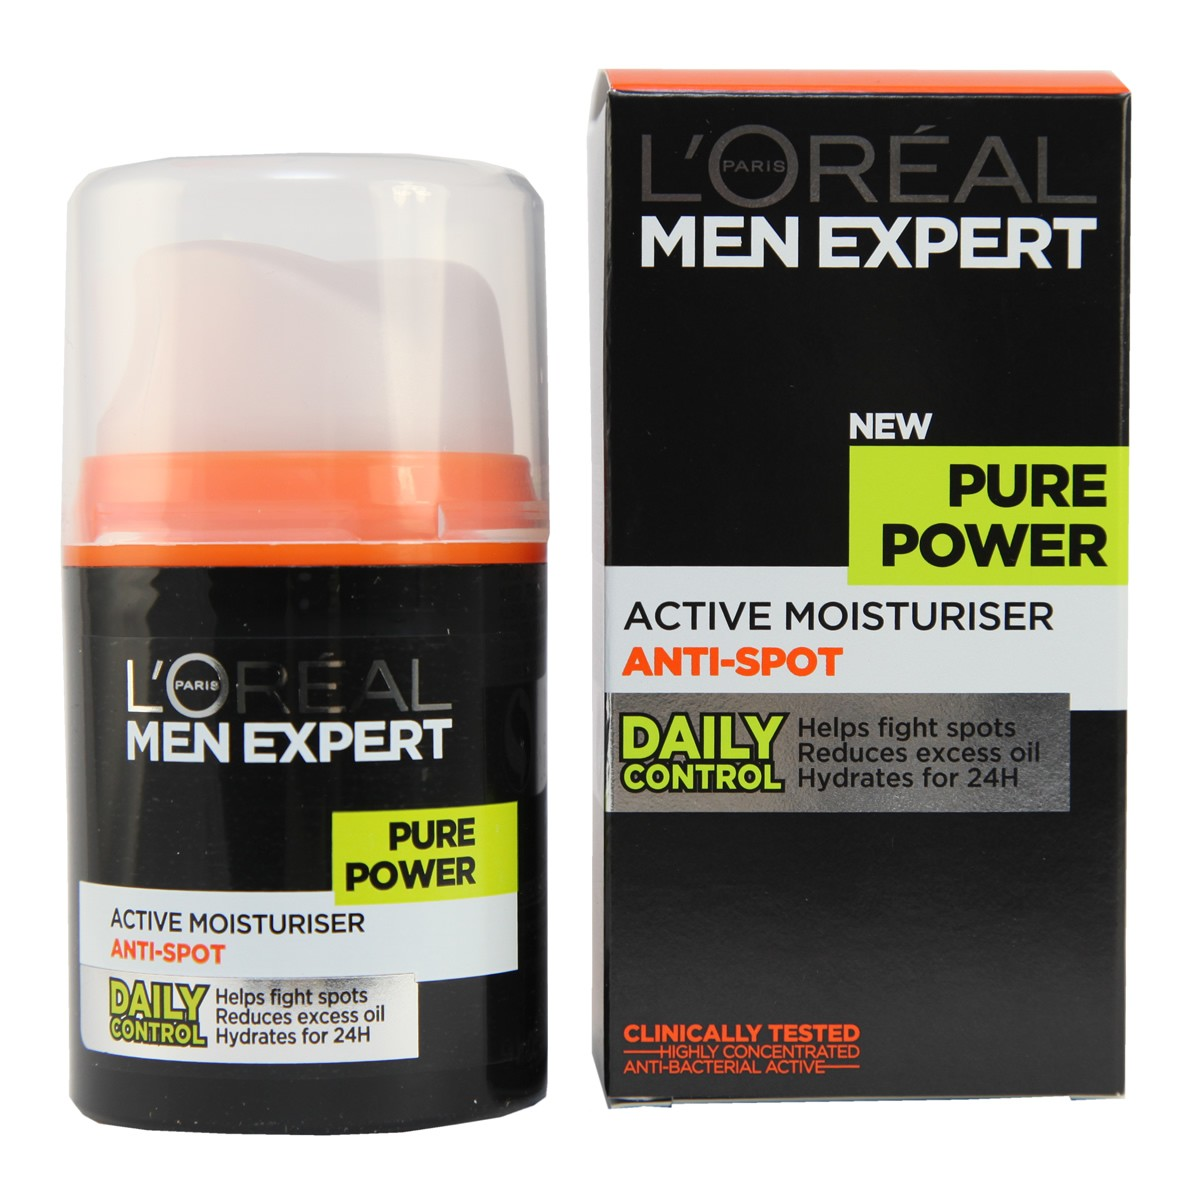 L'Oreal Paris Men Expert Pure Power Active Moisturiser Anti-Spot